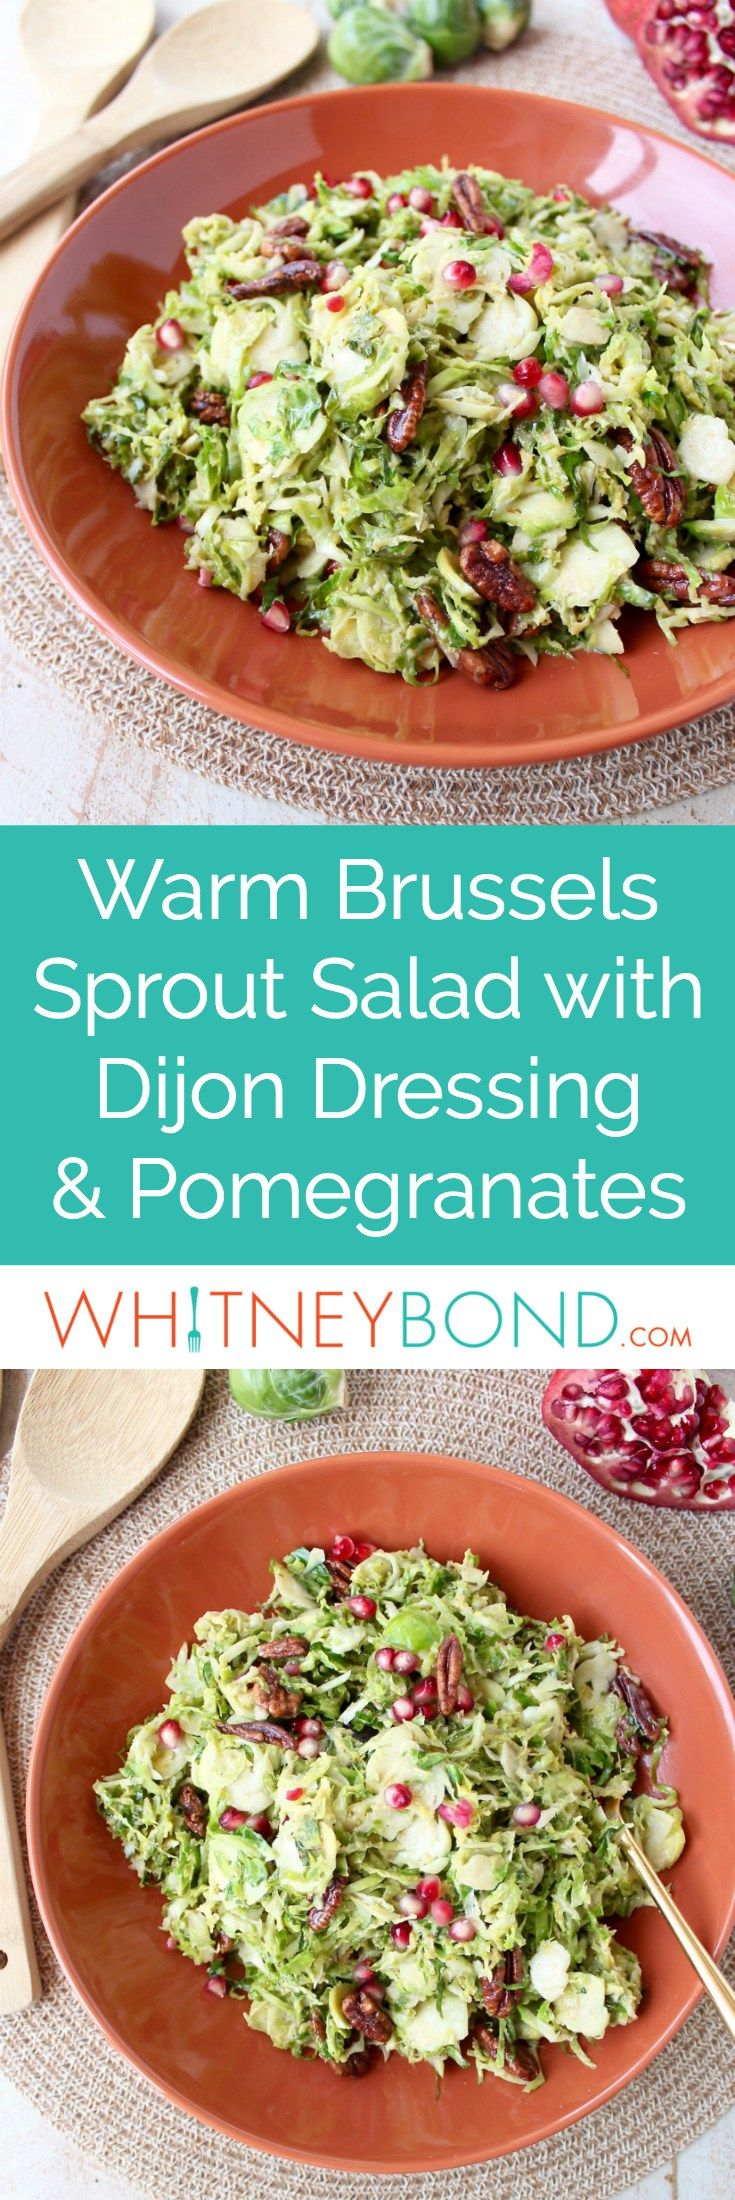 Serve this brussels sprout salad warm or cold as the perfect fall side dish! It's easy enough for weeknight dinners, but elegant enough for Thanksgiving dinner. This salad is tossed with a homemade dijon dressing, pomegranate seeds & pecans for a salad that's both colorful and flavorful! #Thanksgiving #Recipe #Vegetarian #GlutenFree